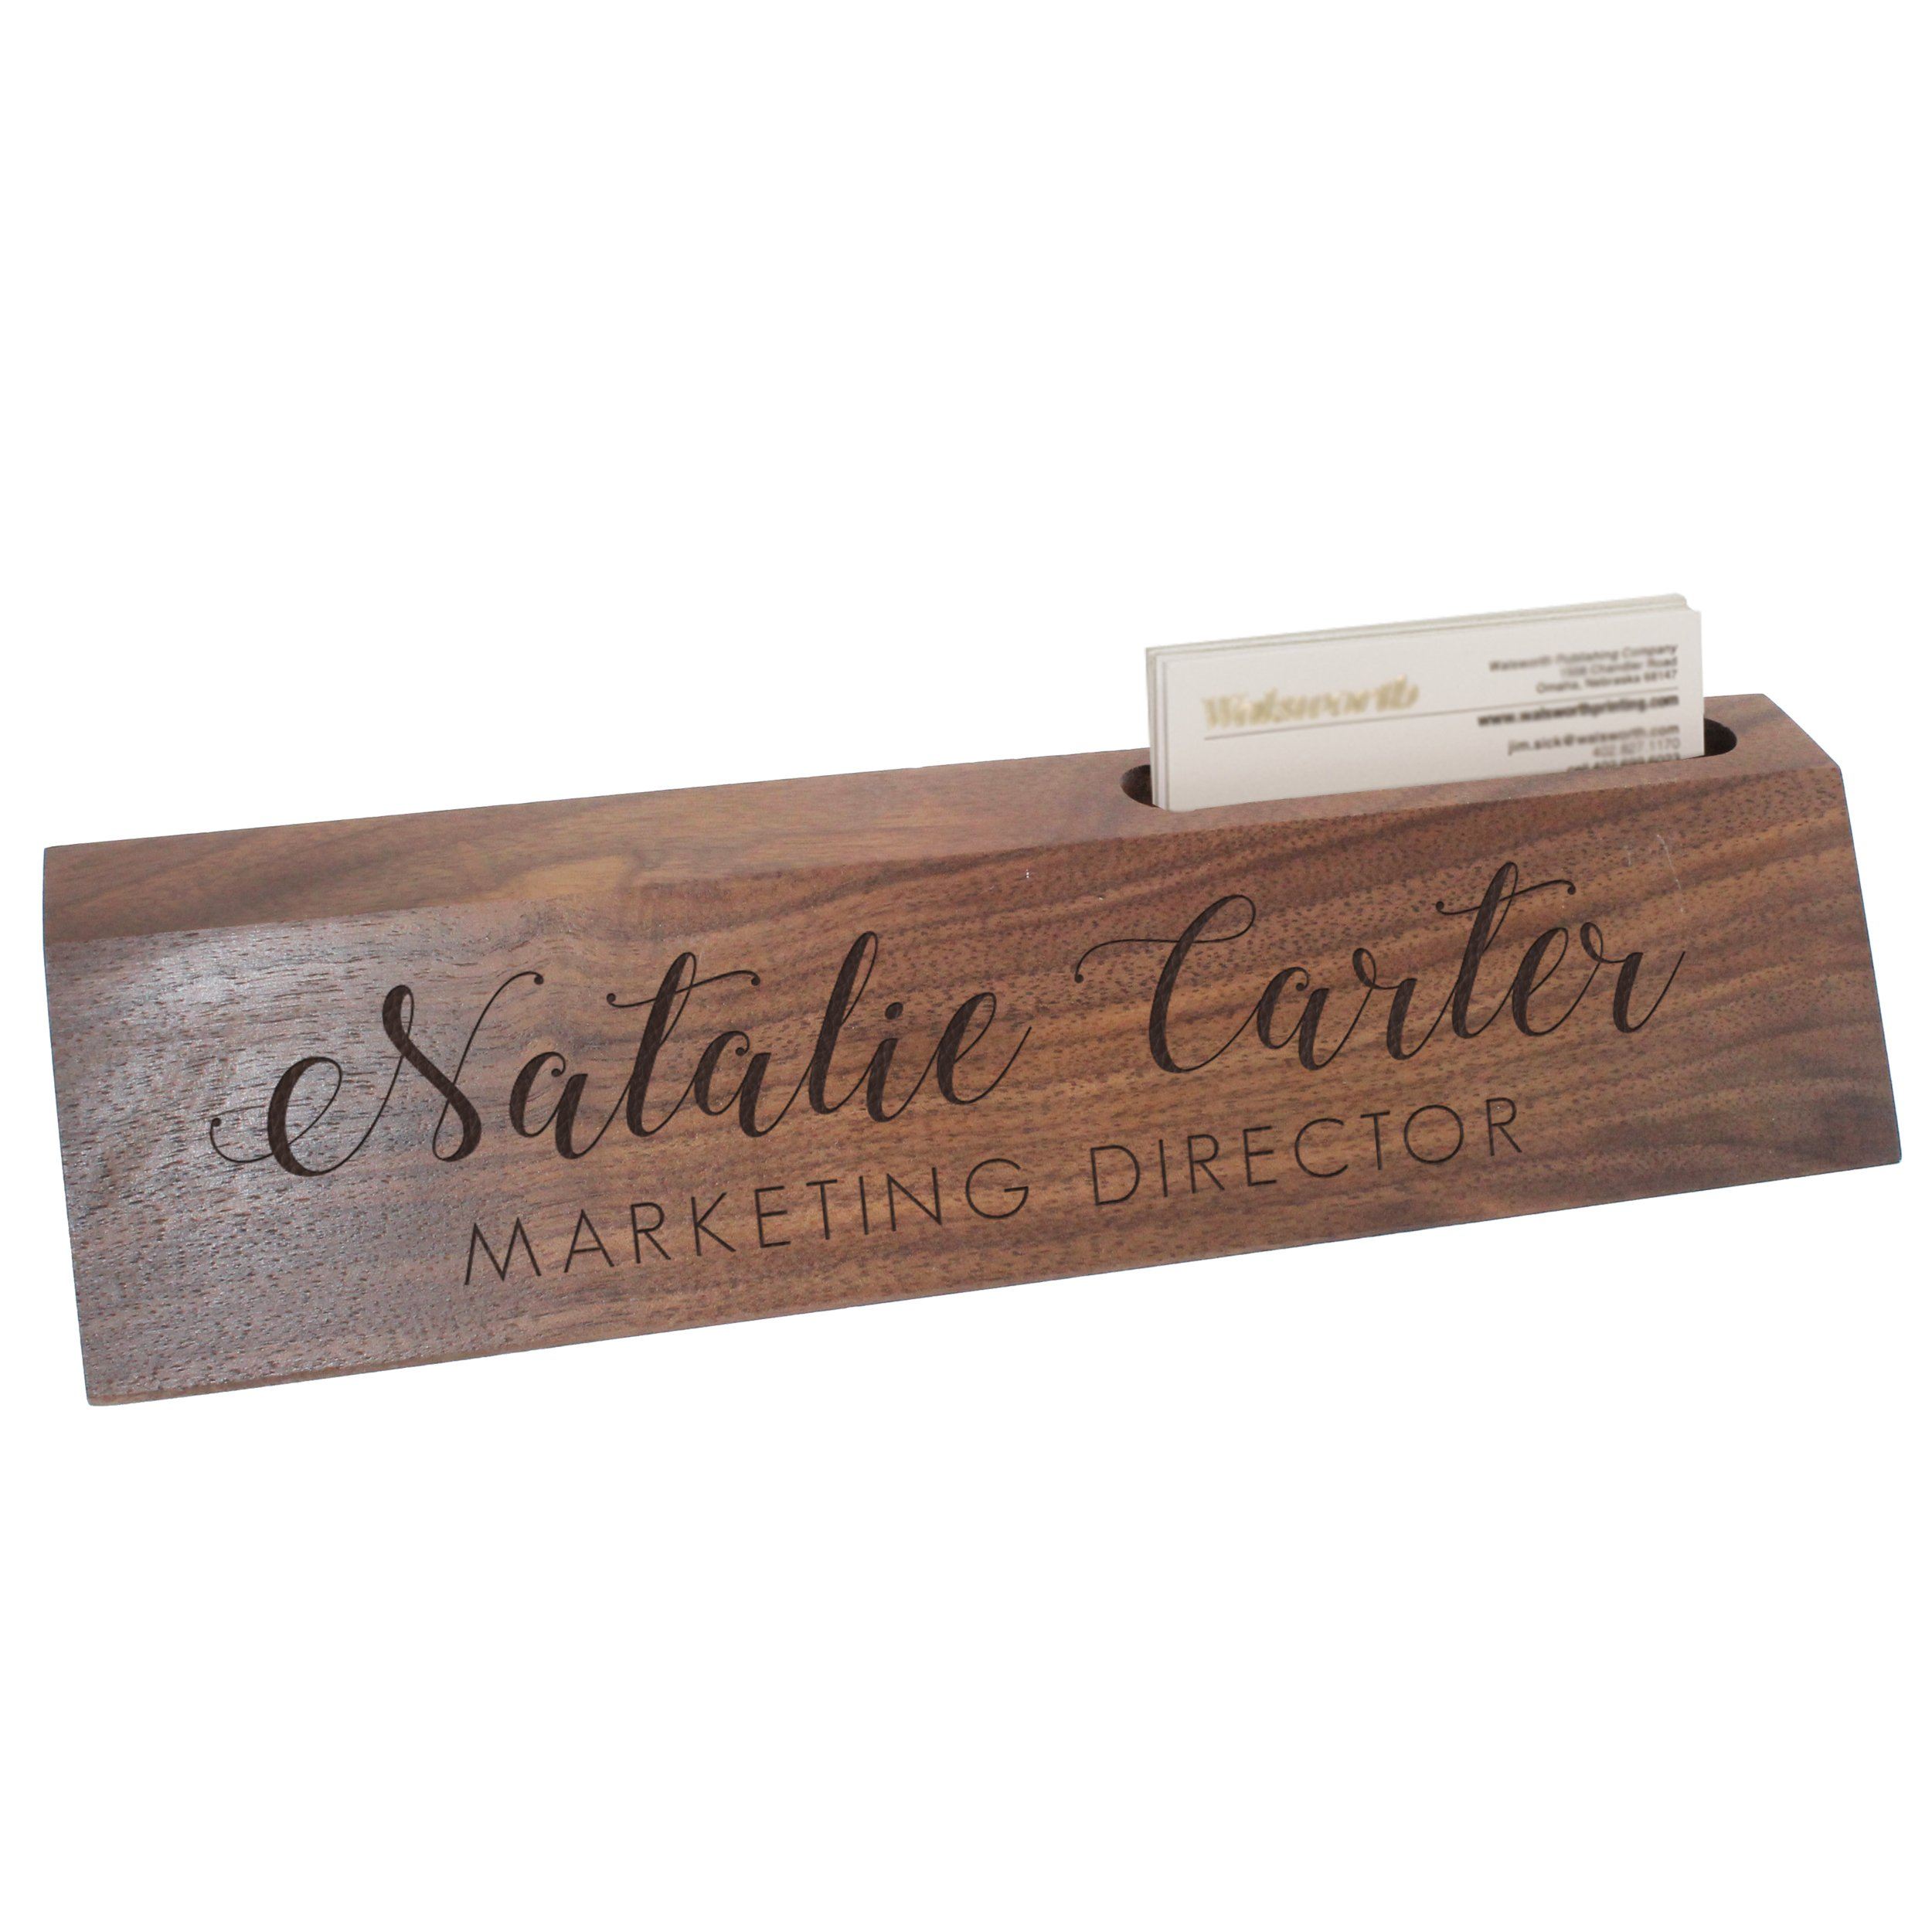 Custom Engraved Desk Name Plate - Personalized Desk Wedge with Business Card Holder (Walnut Wood) by The Wedding Party Store